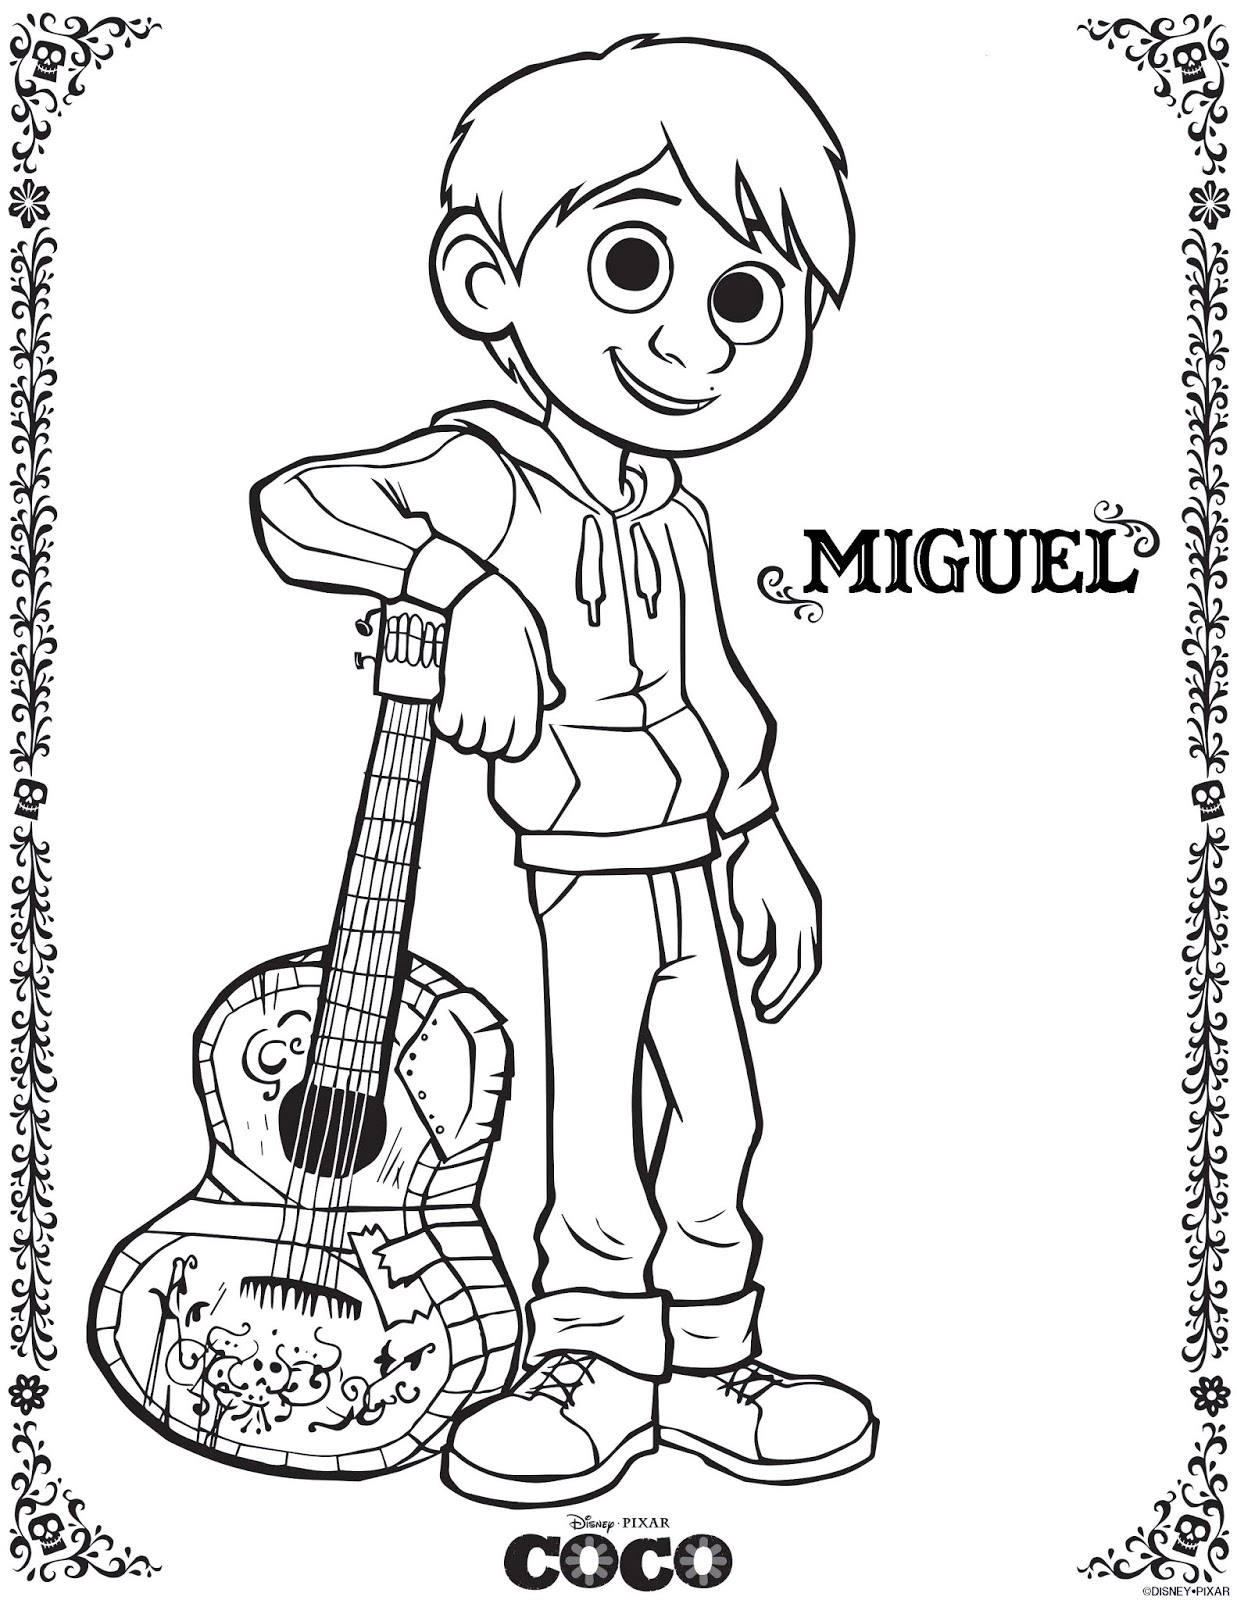 miguel coco coloring pages from disney pixar movie